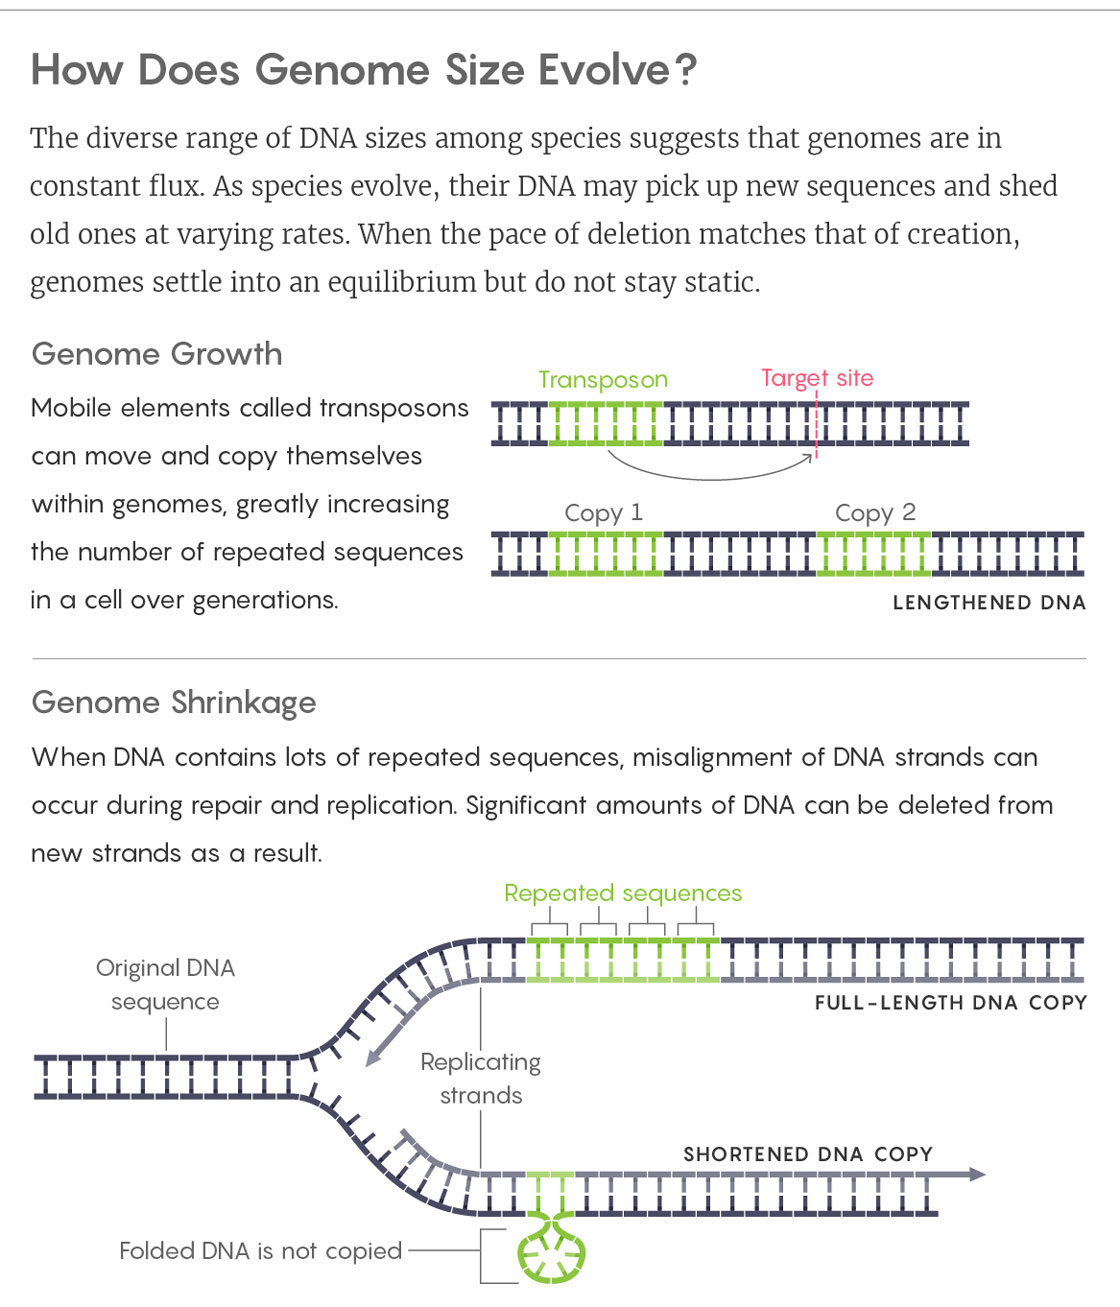 GRAPHIC: HOW DOES GENOME SIZE EVOLVE?